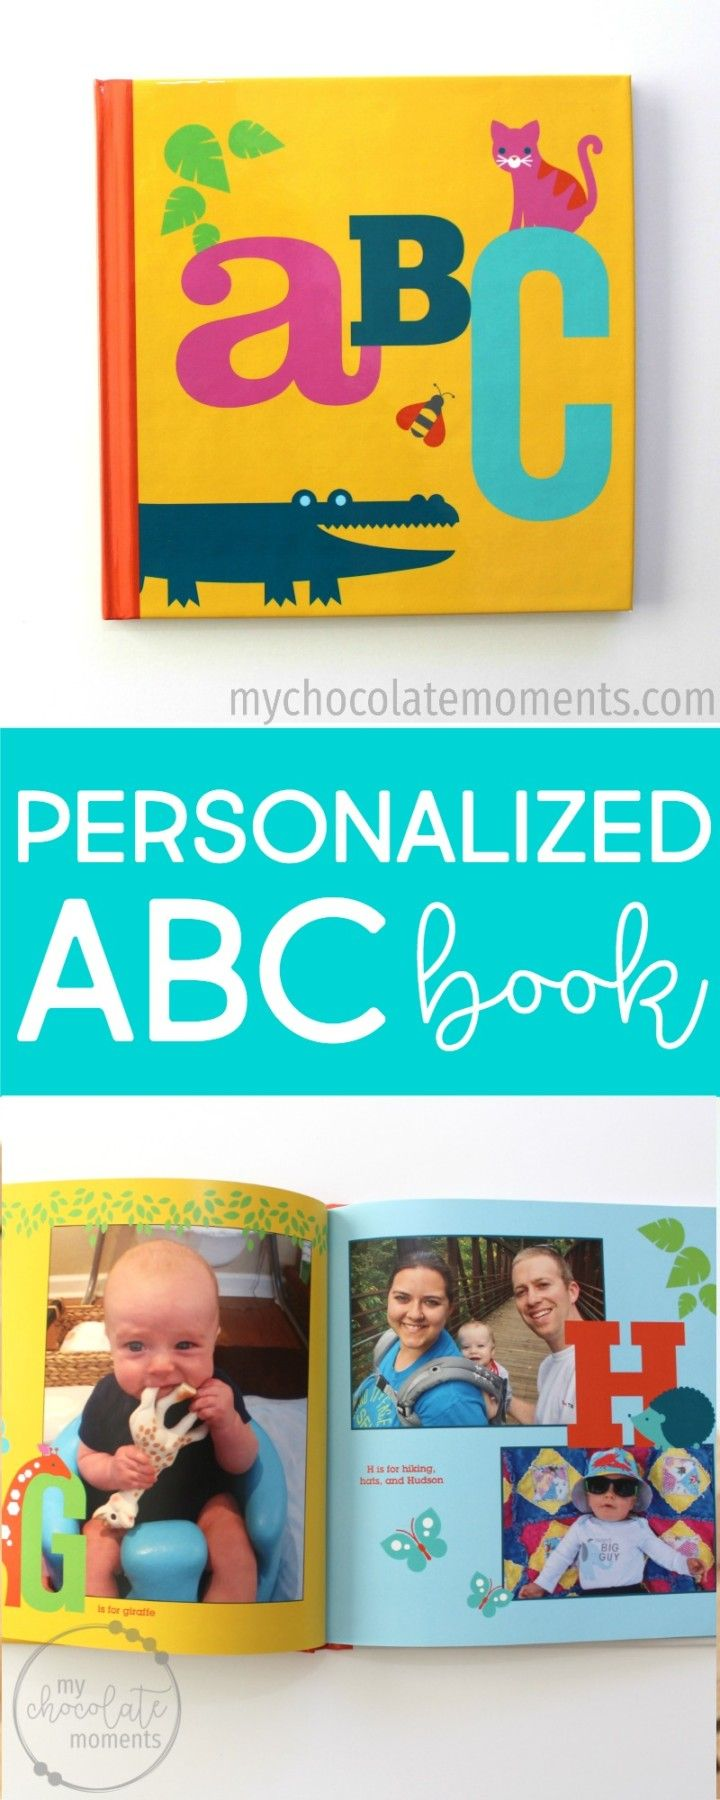 how to make a personalized ABC book for your child with Shutterfly photo books